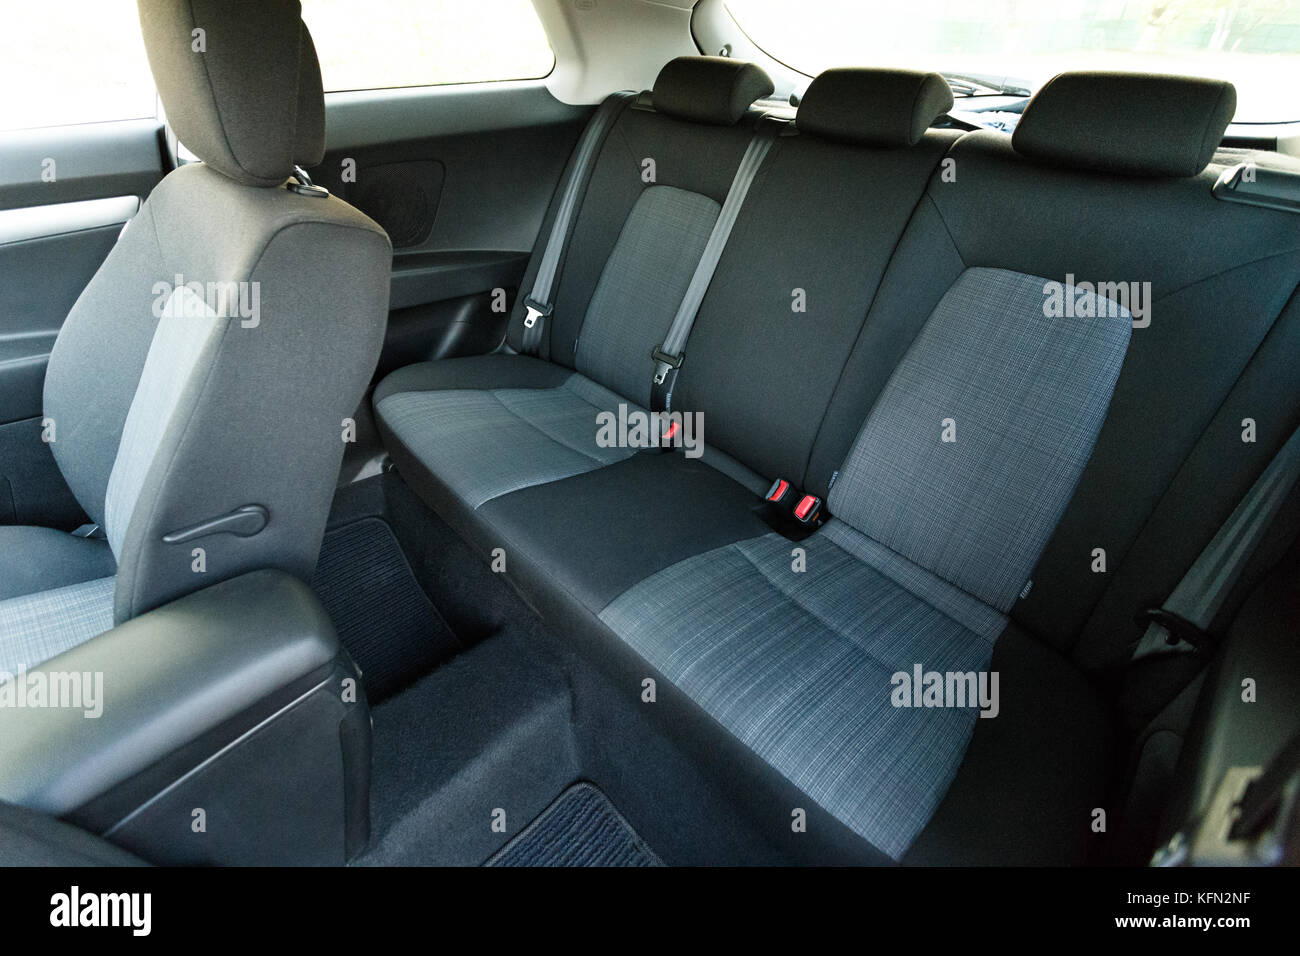 car back seats stock photos car back seats stock images alamy. Black Bedroom Furniture Sets. Home Design Ideas